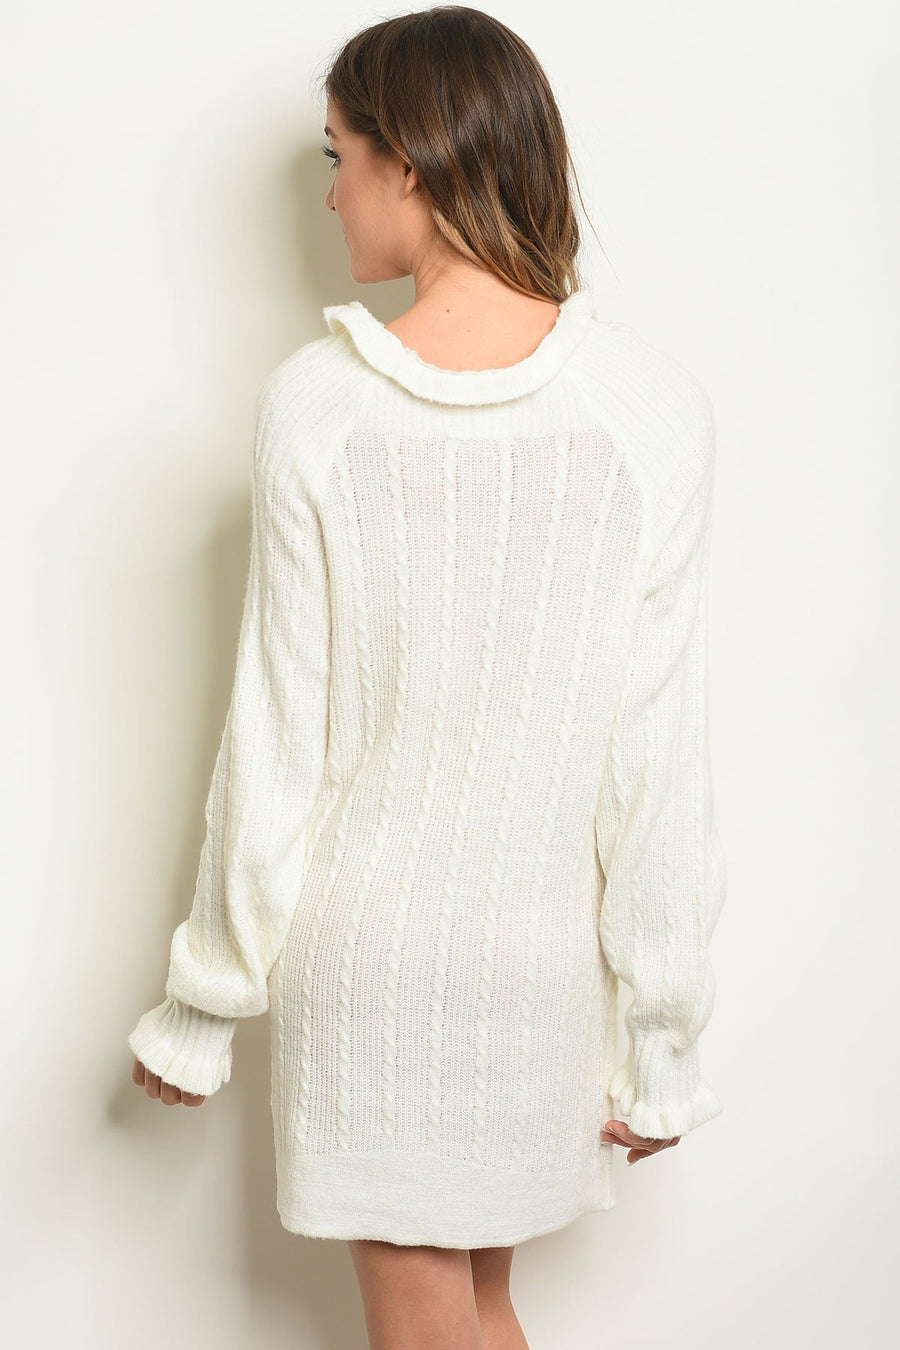 Sweater Dress Women - Apparel - Sweaters Cardigans and Tops Tigerlily and Me